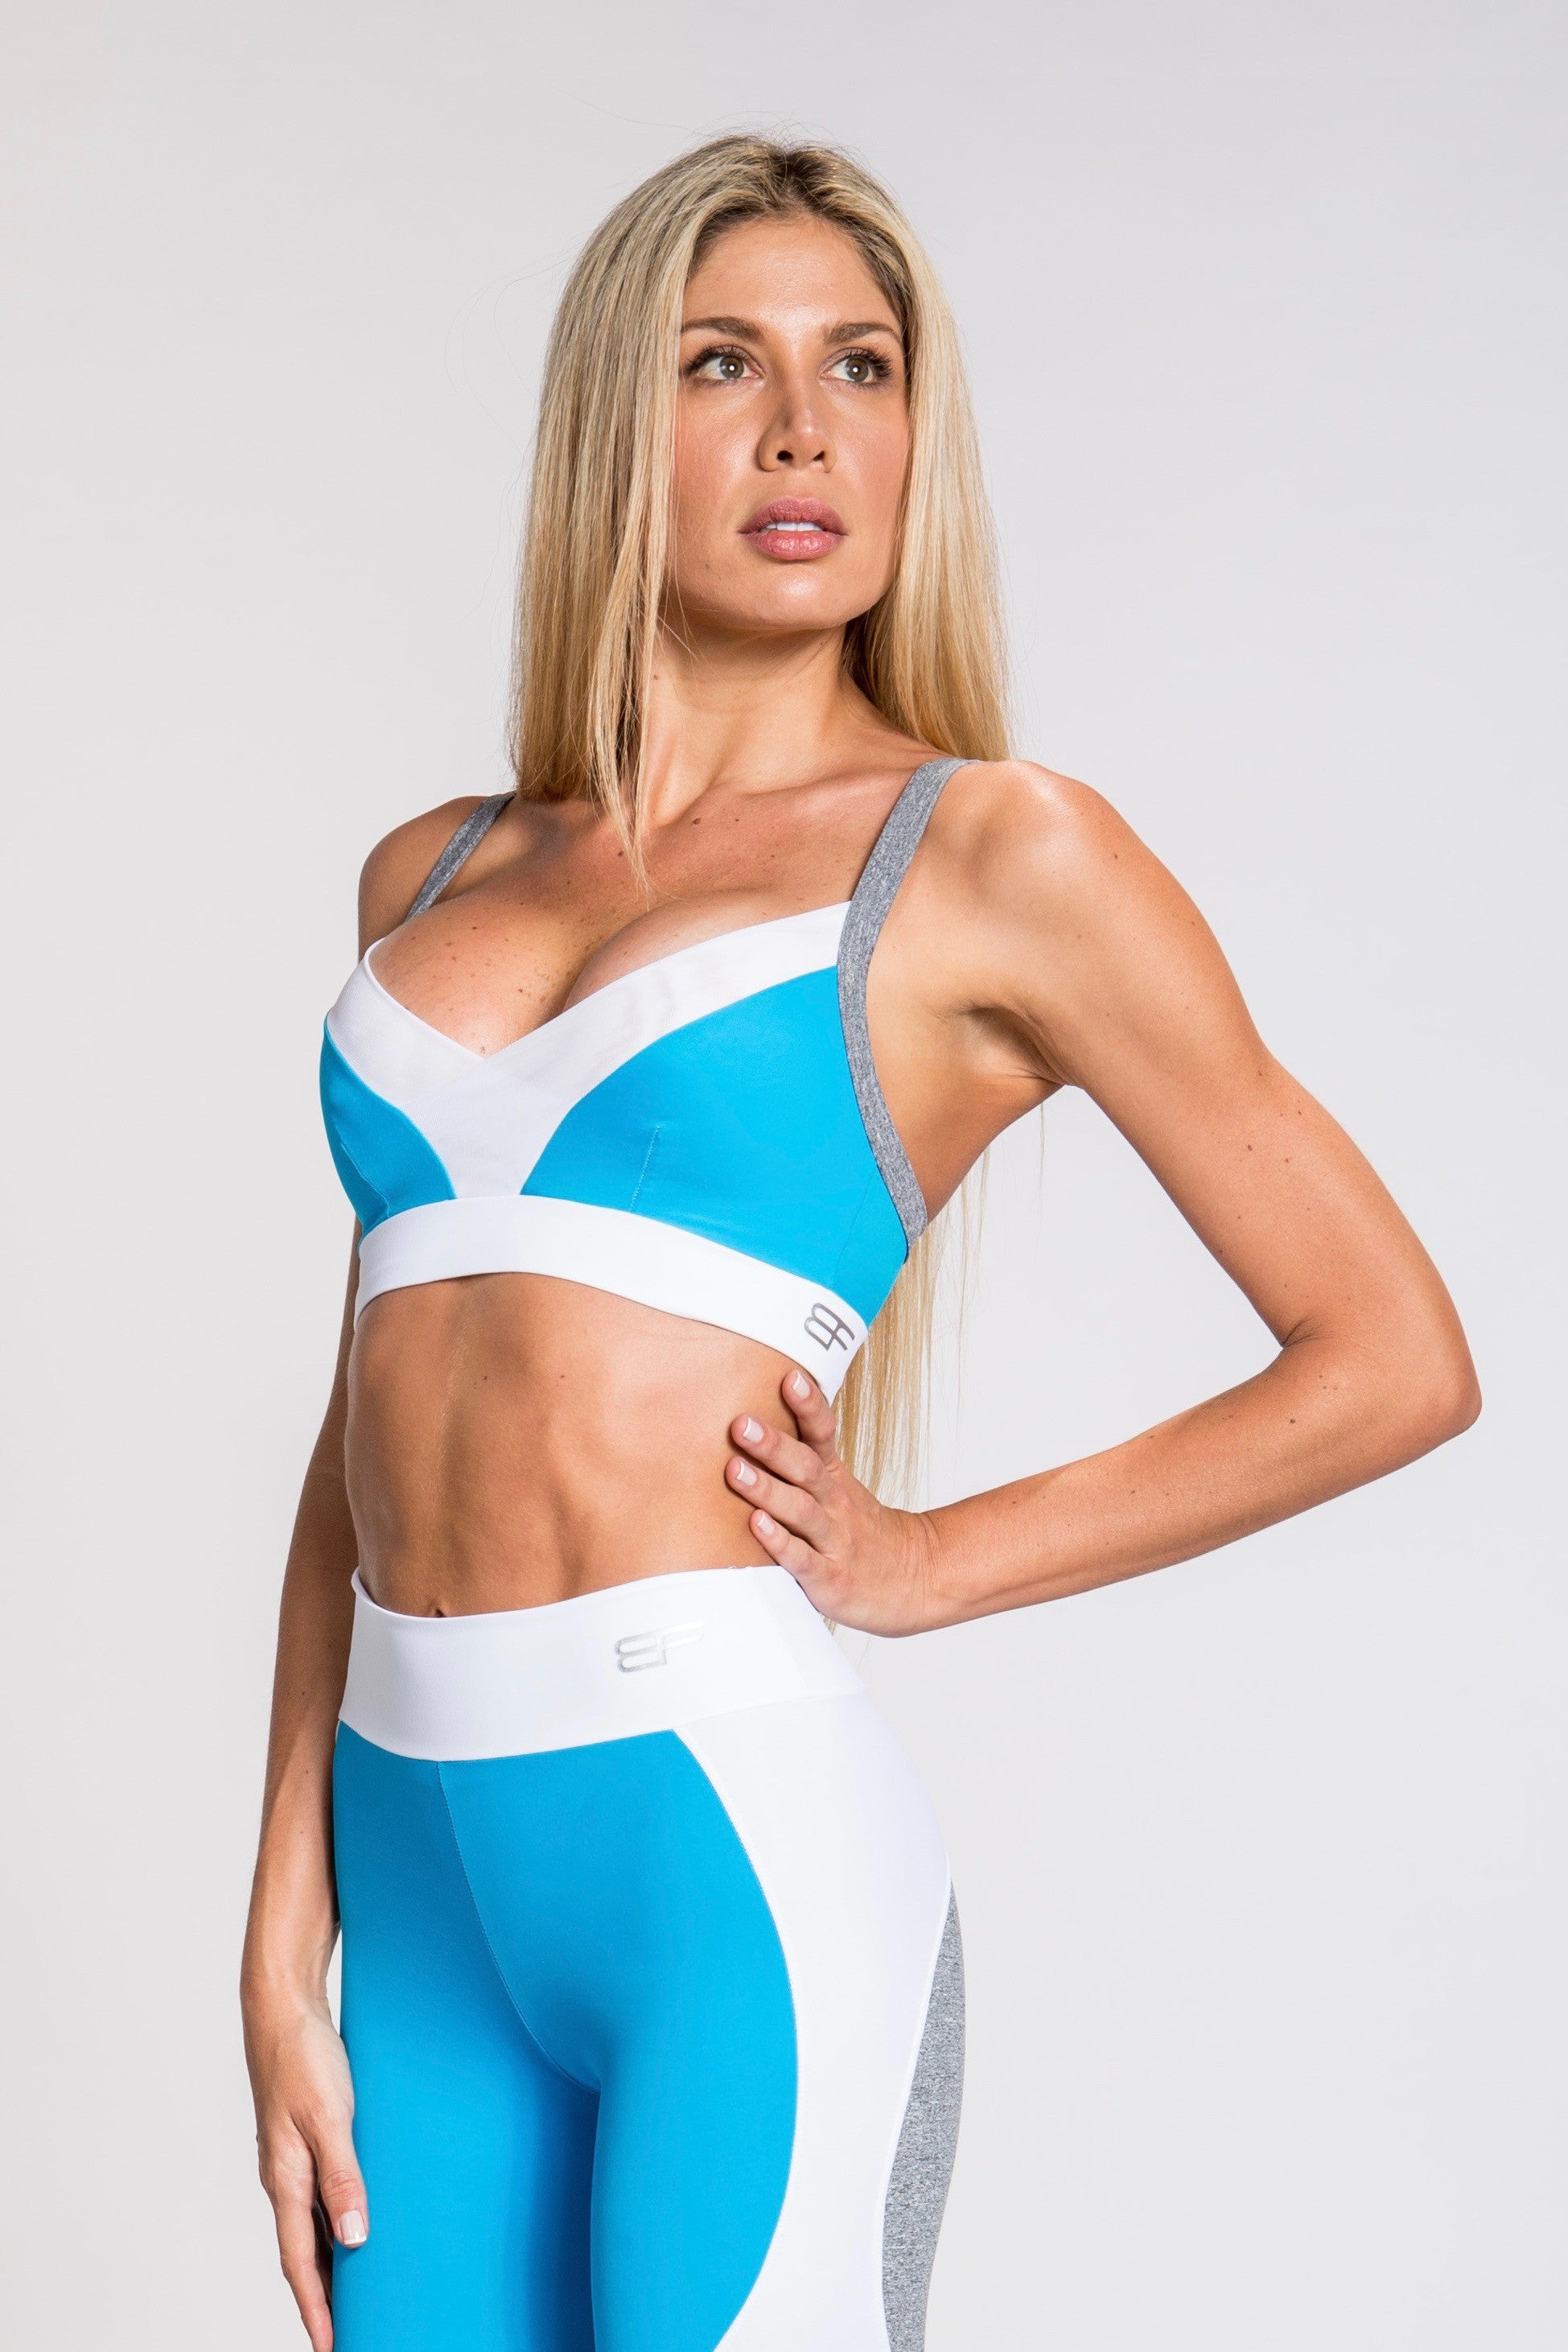 Flexy Feline Triangle Bra - Gray/Turquoise/White